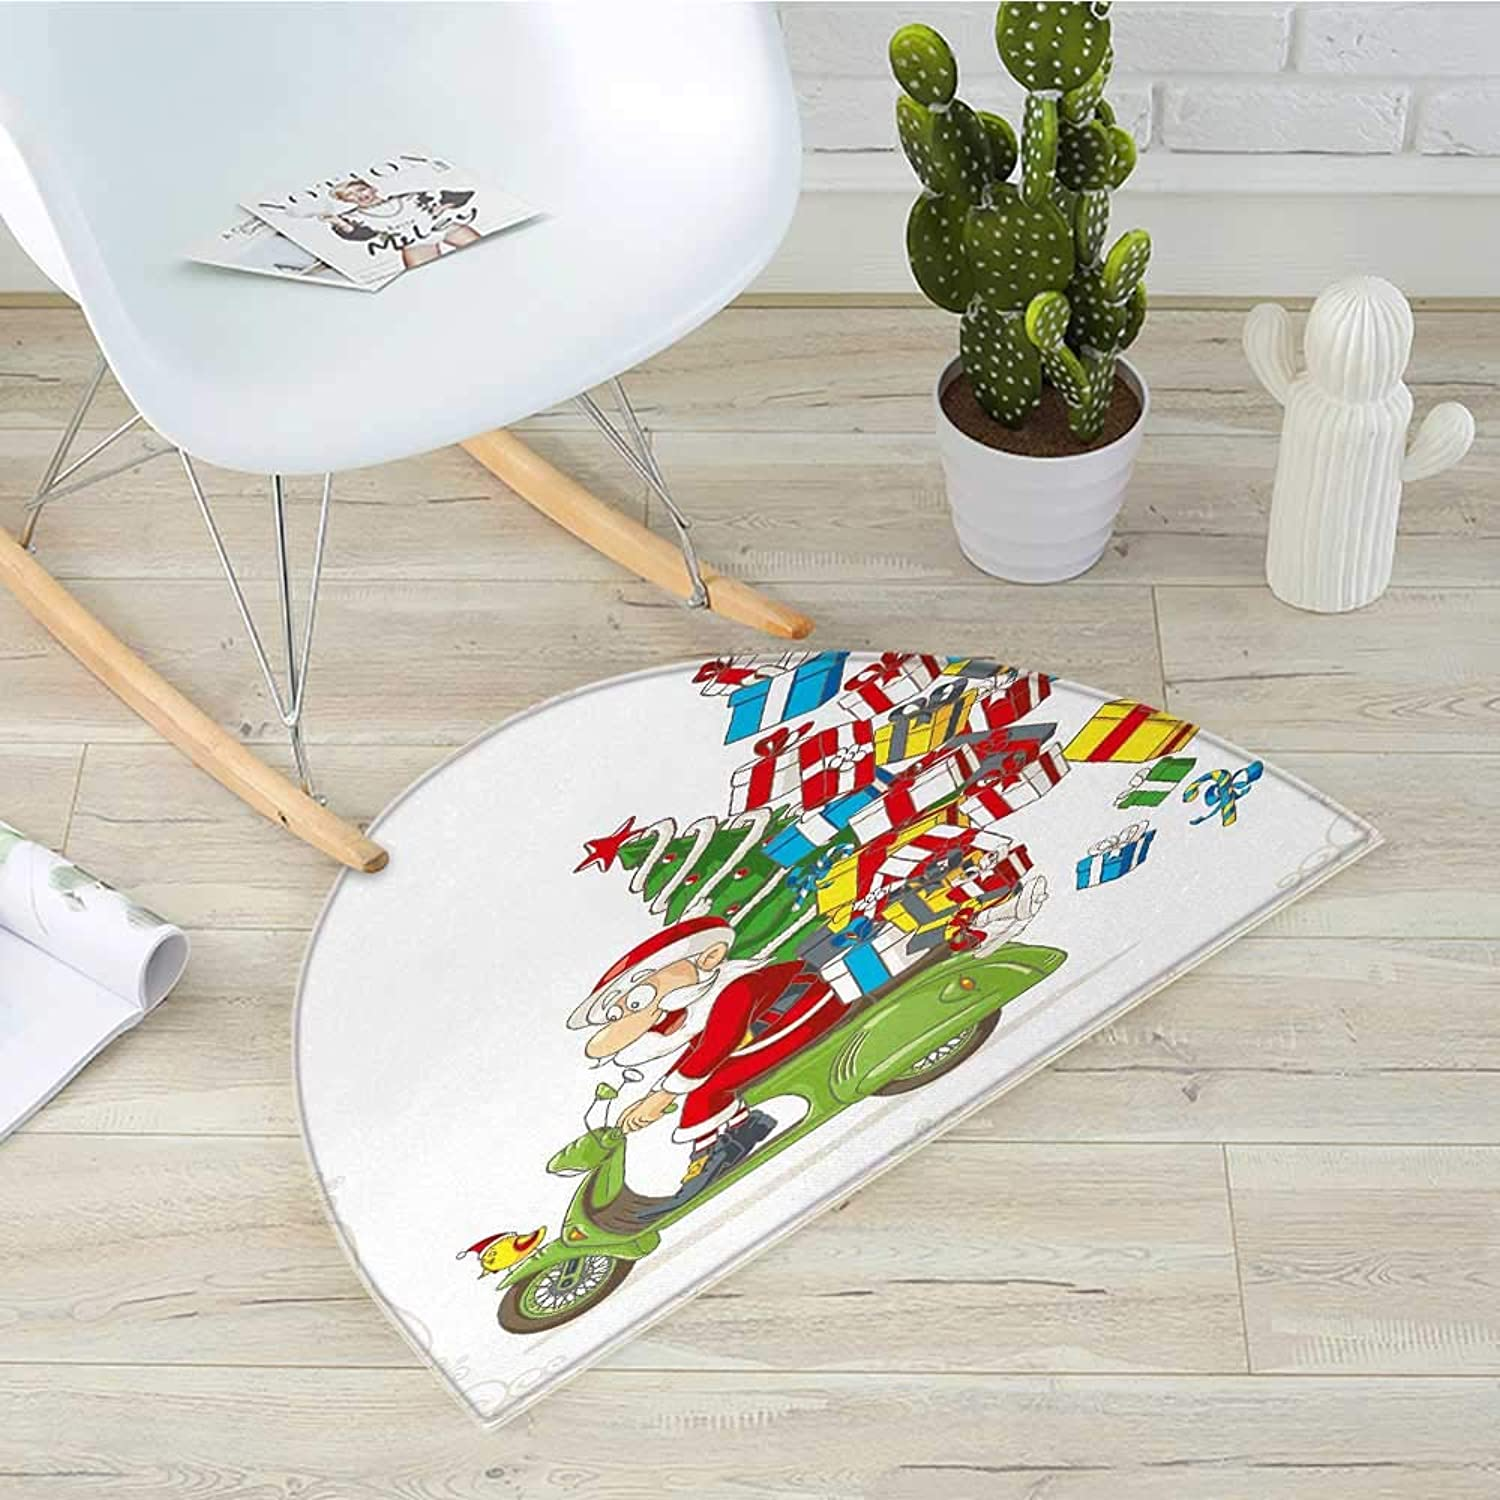 Christmas Semicircle Doormat Santa on Motorbike Scooter with Tree and Gifts Funny Cartoon for Kids Bird Halfmoon doormats H 31.5  xD 47.2  White Green Red